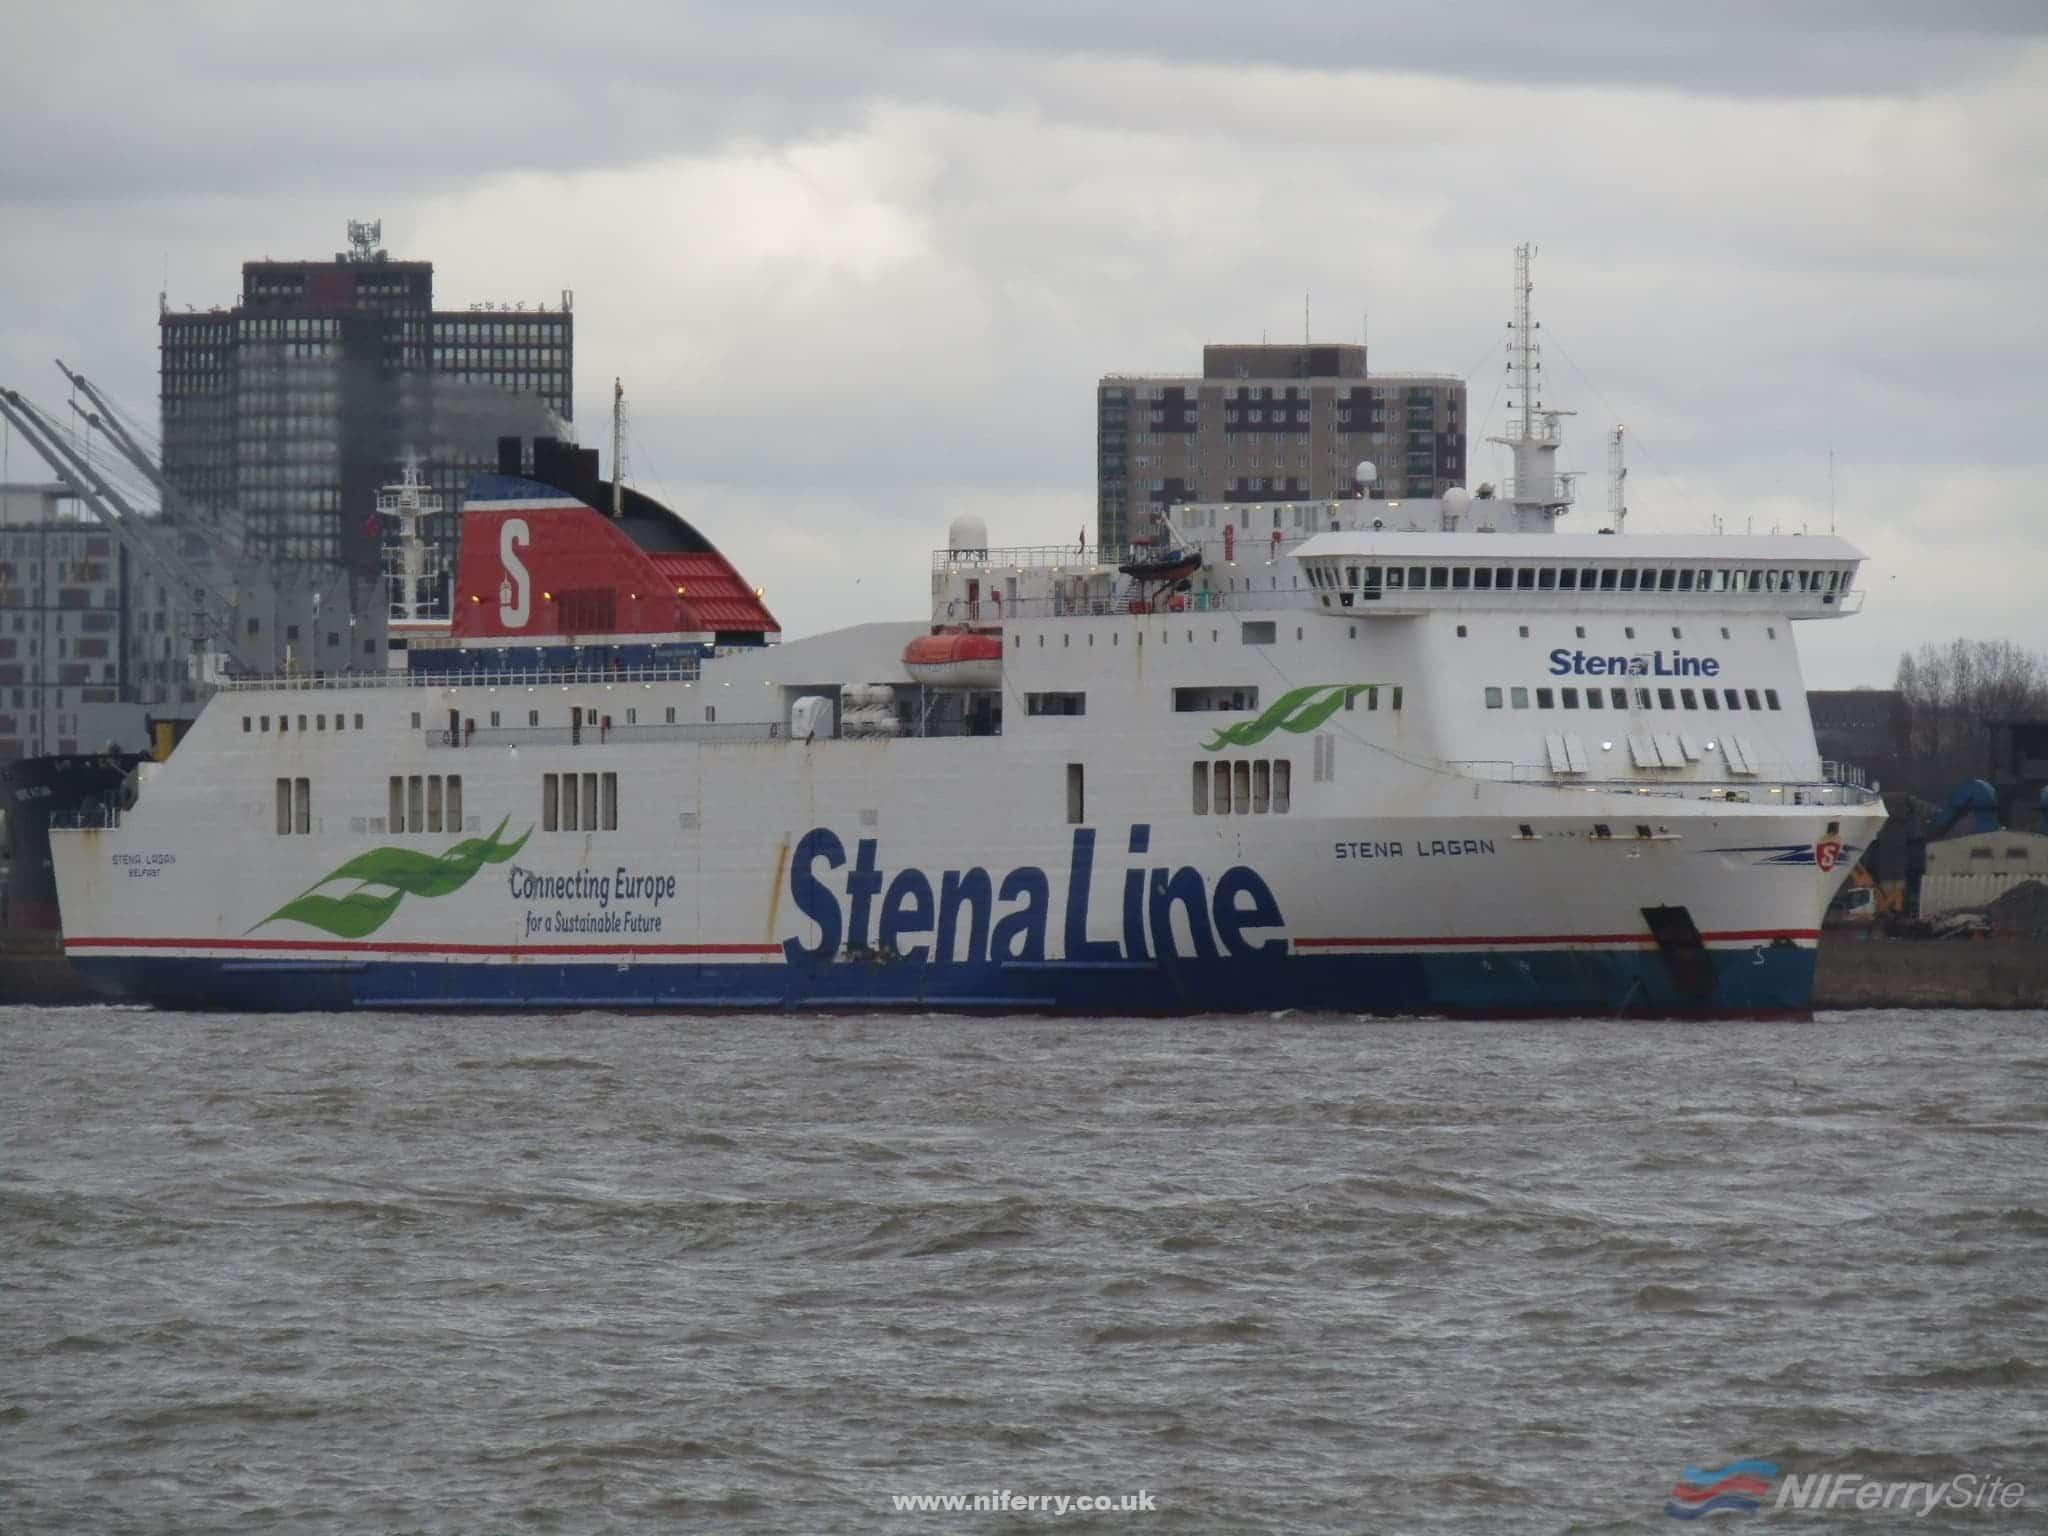 STENA LAGAN leaves Liverpool for the last time with a destination of Tuzla in Turkey. The former Belfast - Liverpool ferry is to be lengthened by 36 metres for a new role. Copyright © Rob Foy.